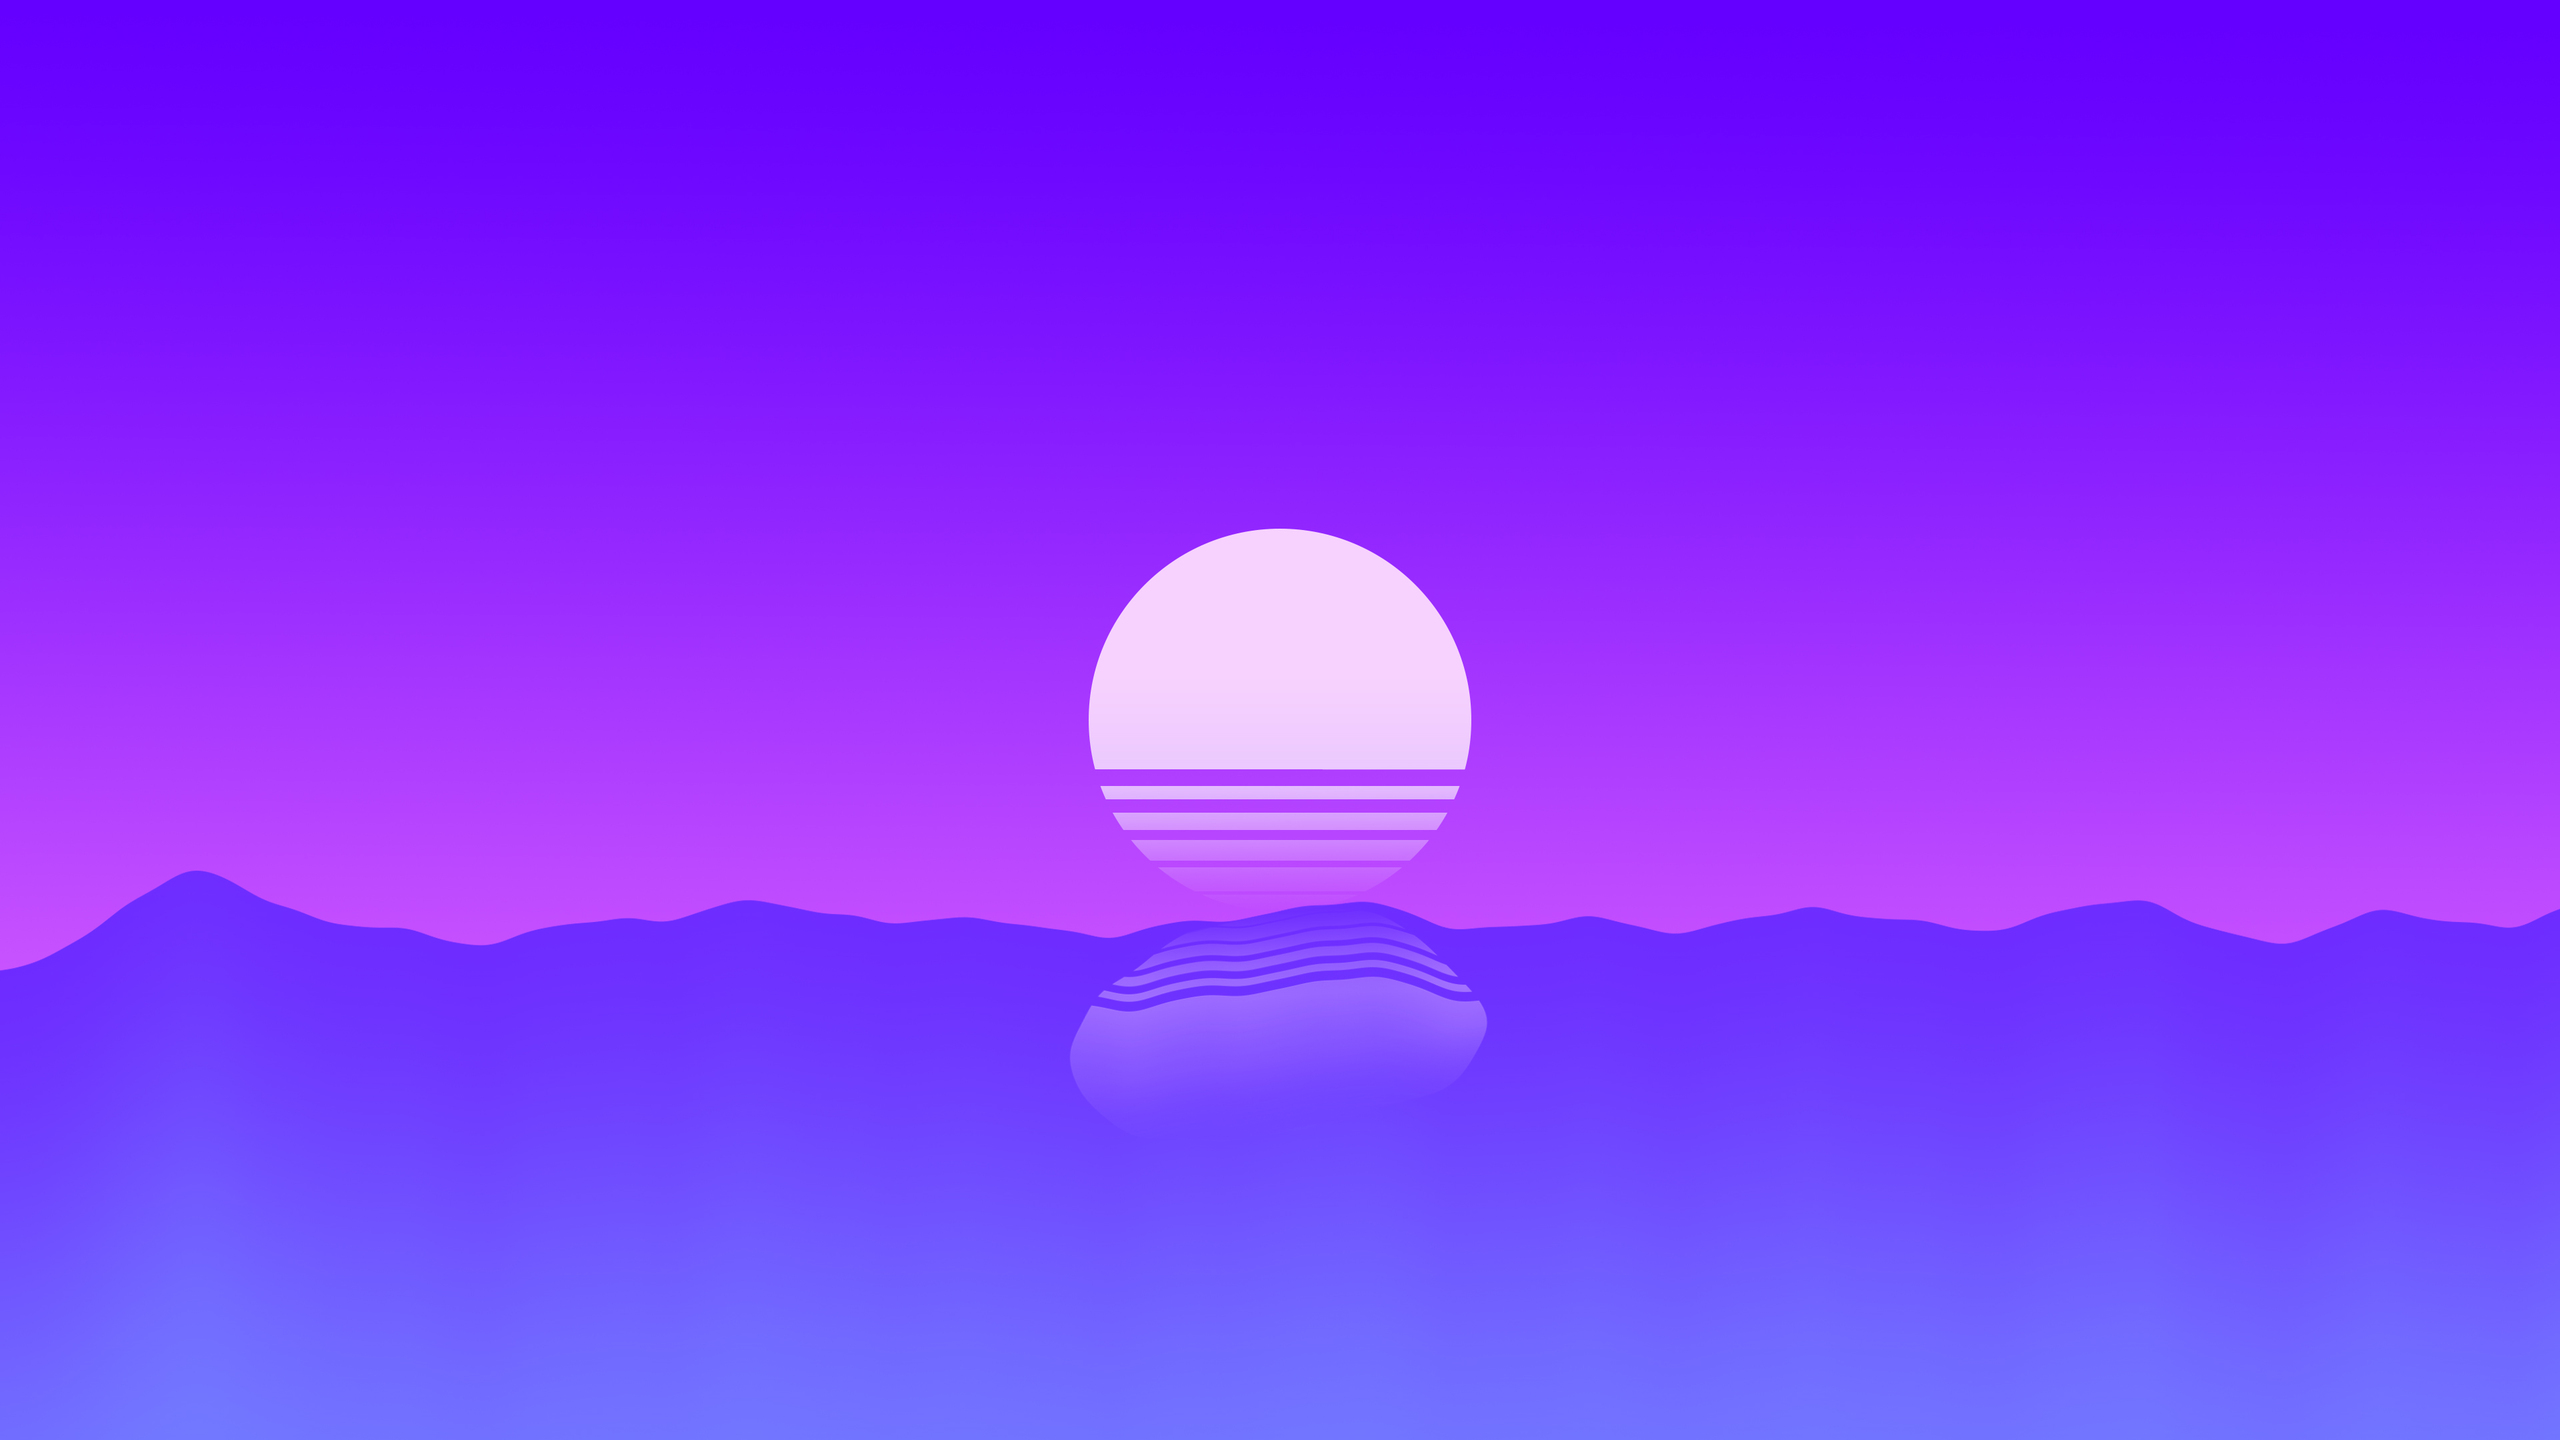 2560x1440 Sunset Outrun Minimalism 4k 1440P Resolution HD ...